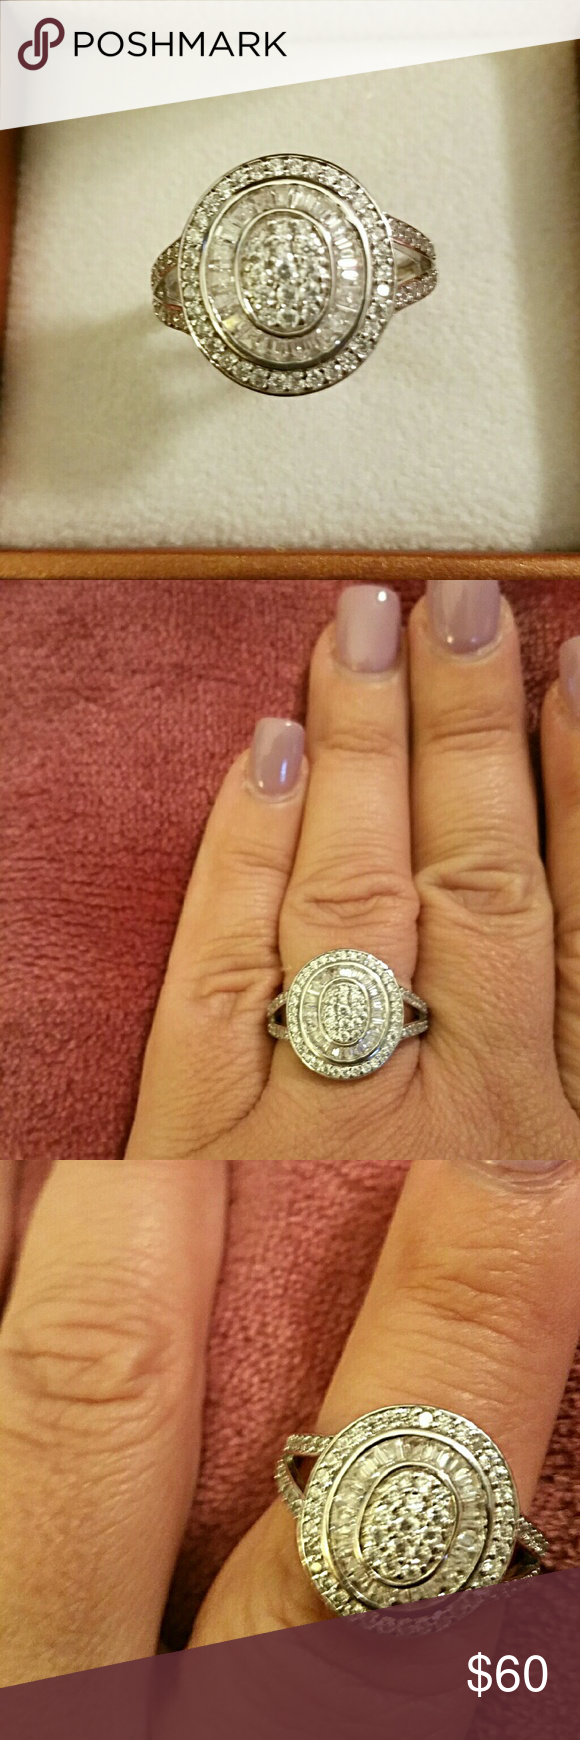 Bella Luce Sterling Silver Ring